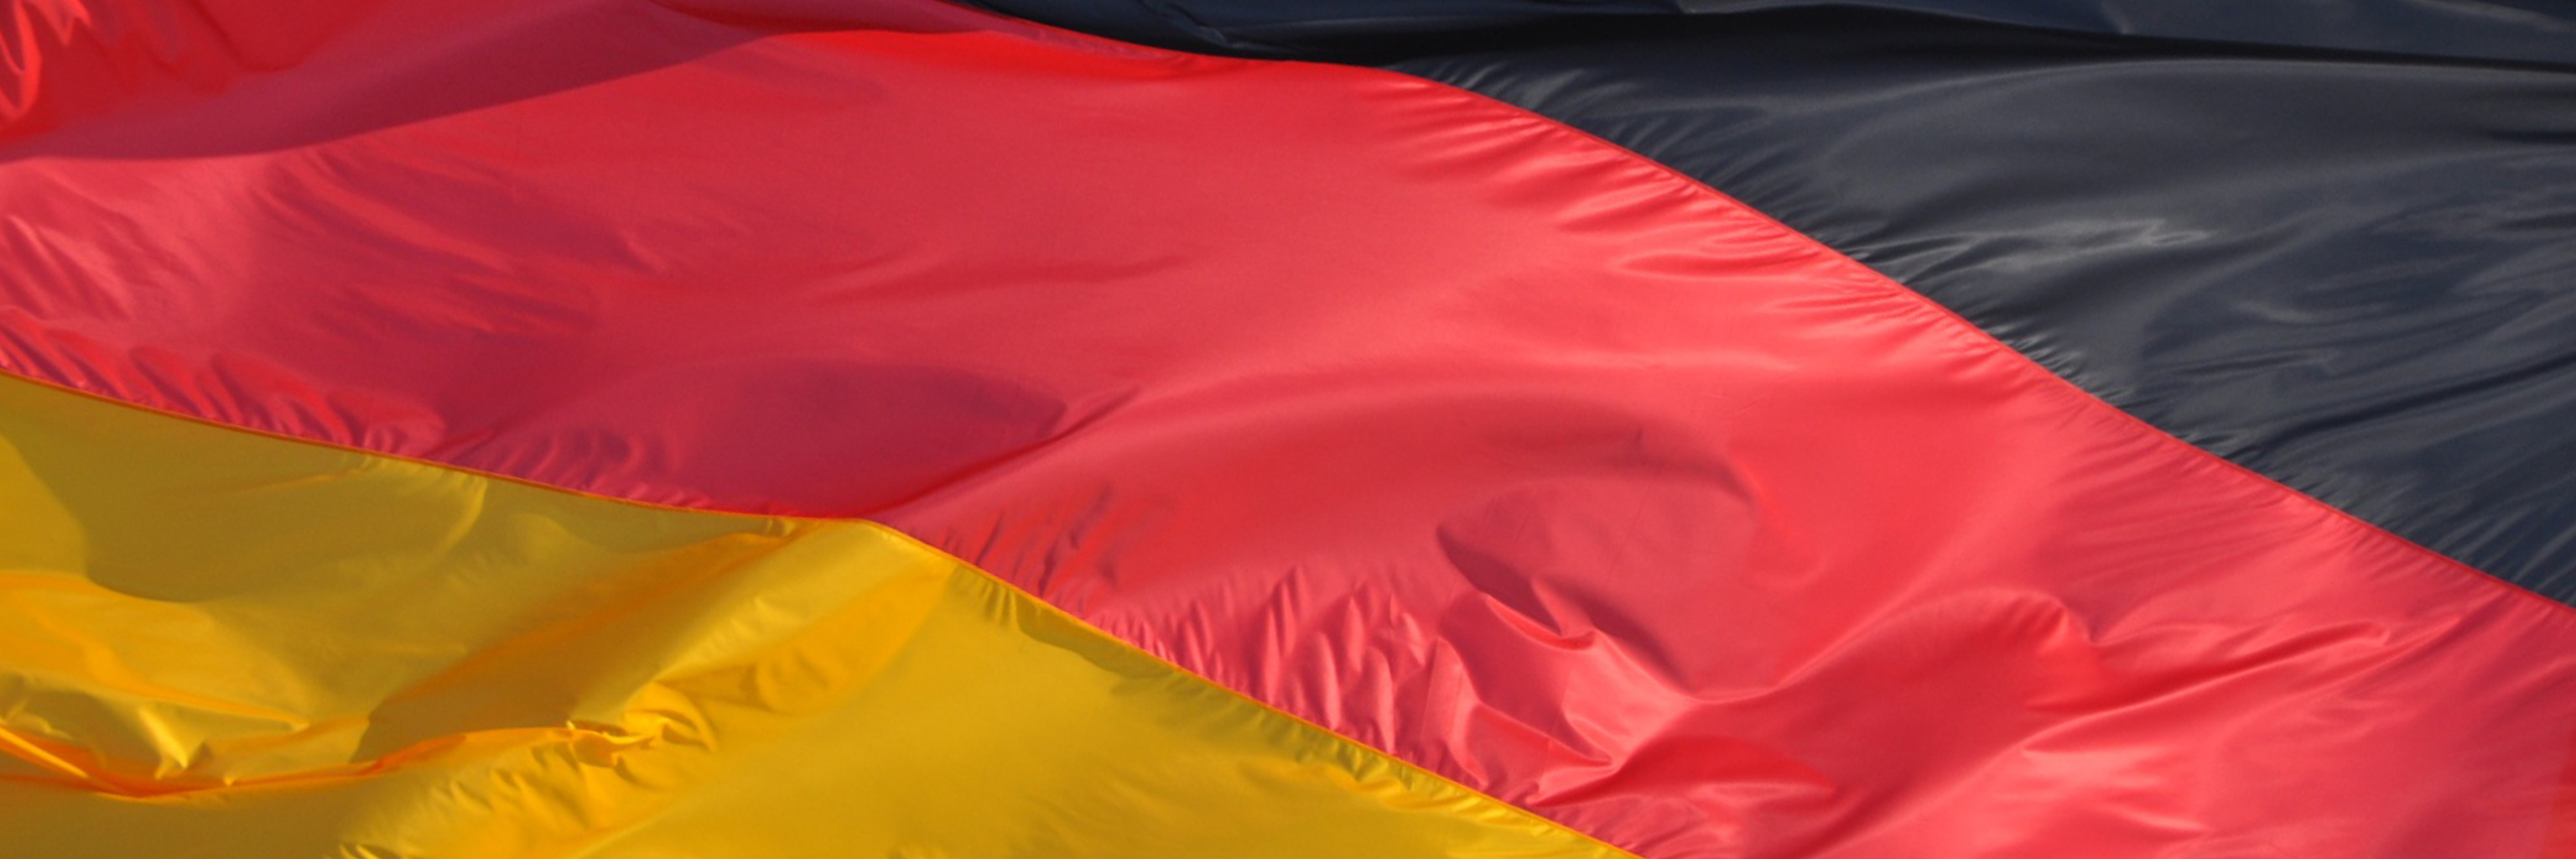 Close-up image of black, red, and yellow German flag.